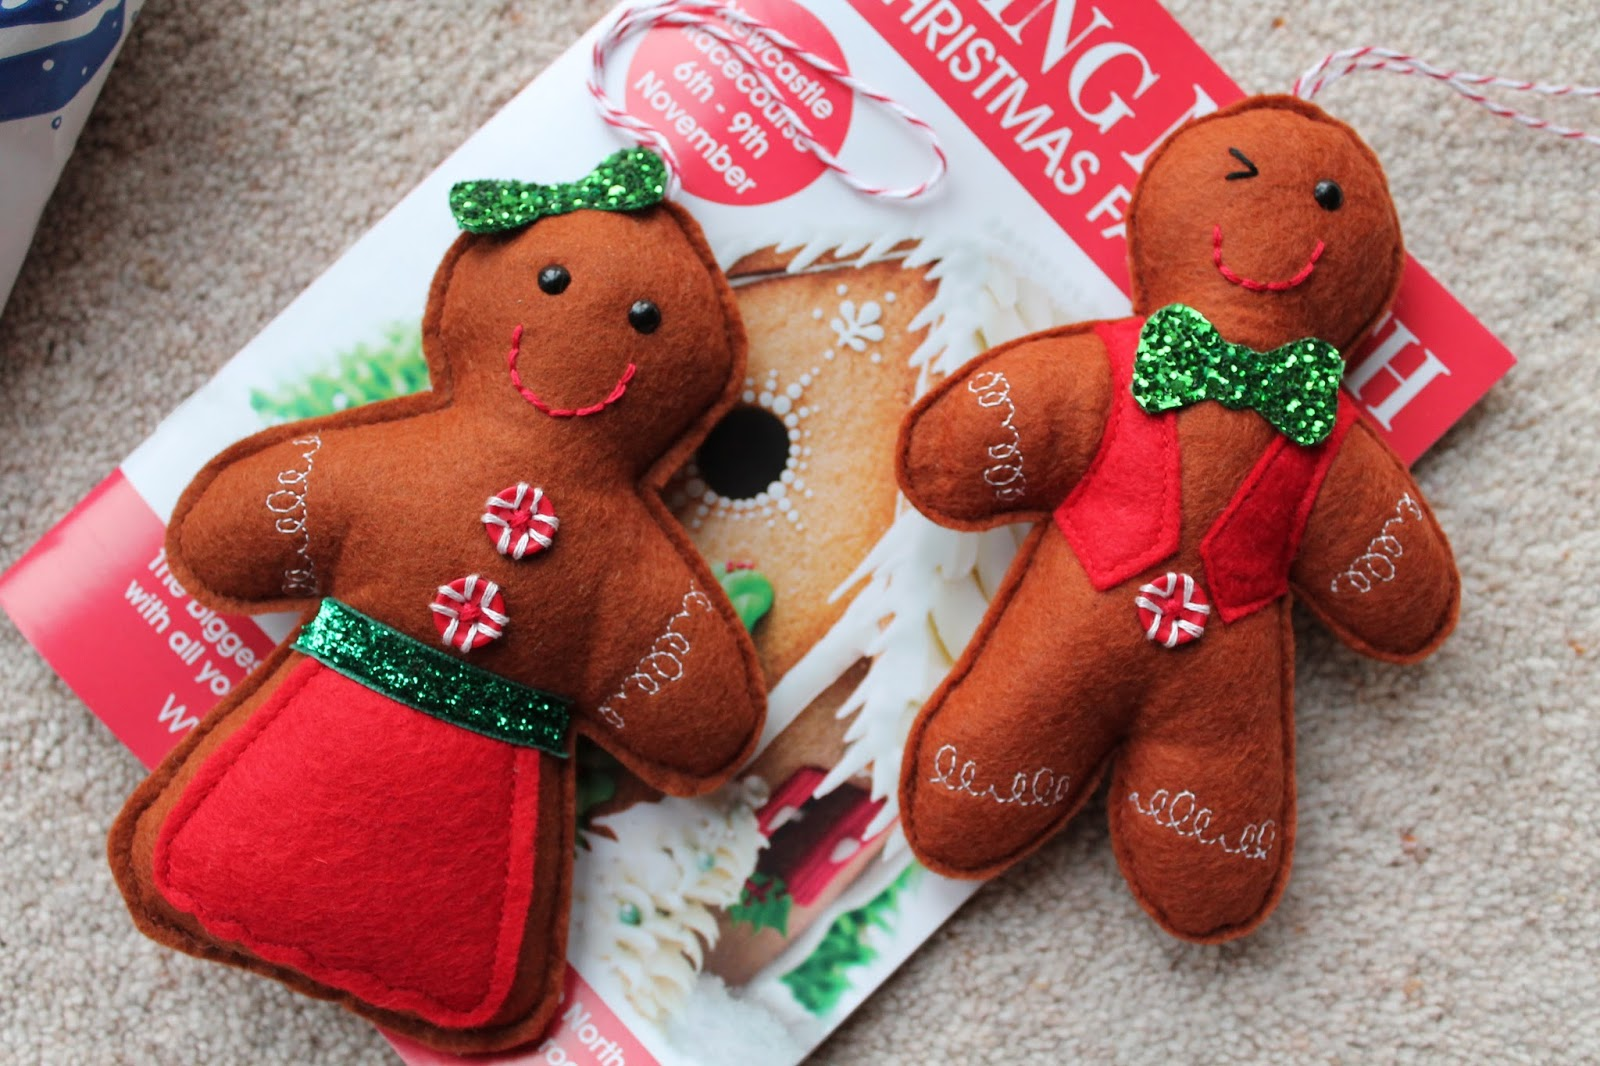 Gingerbread People - Living North Christmas Fair Newcastle Racecourse